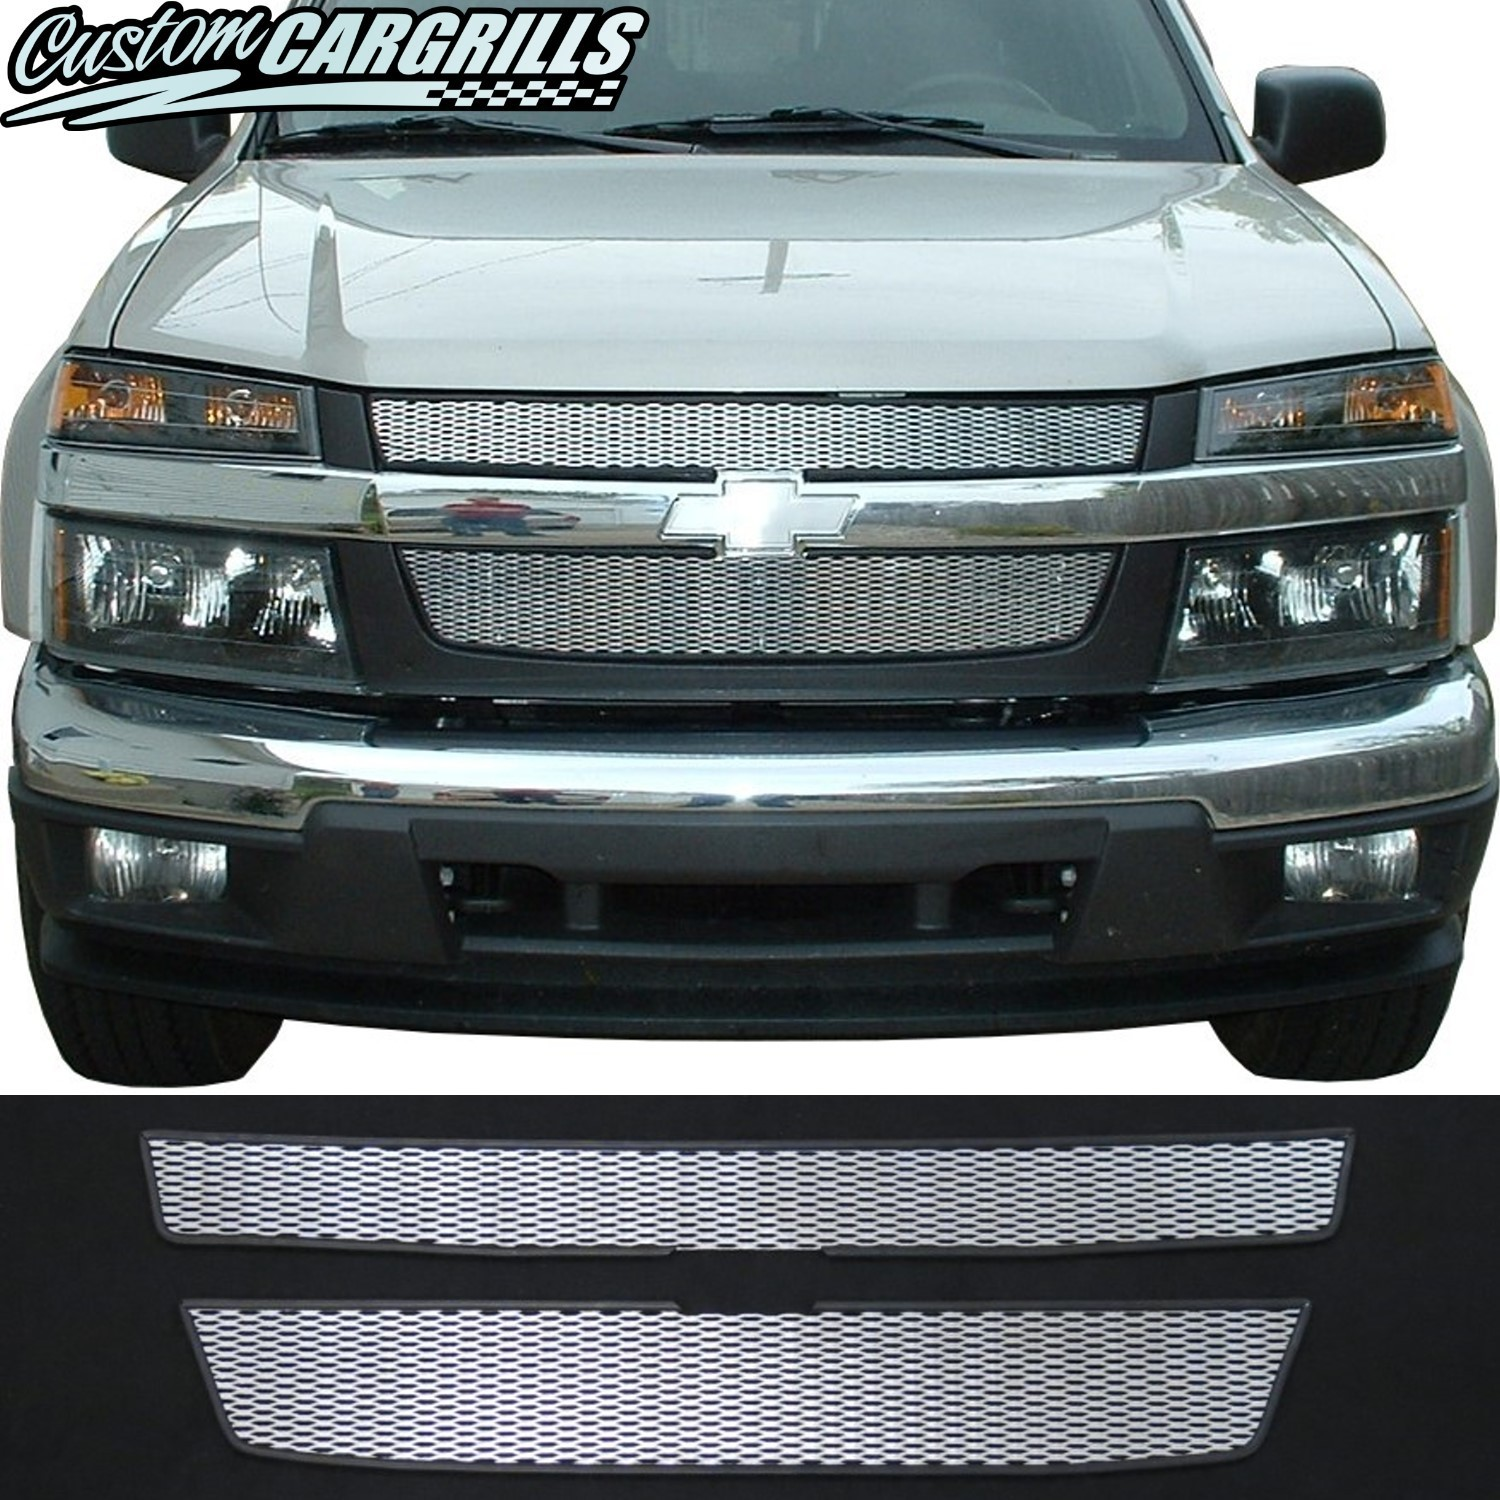 2004-12 Chevrolet Colorado Mesh Grill Kit